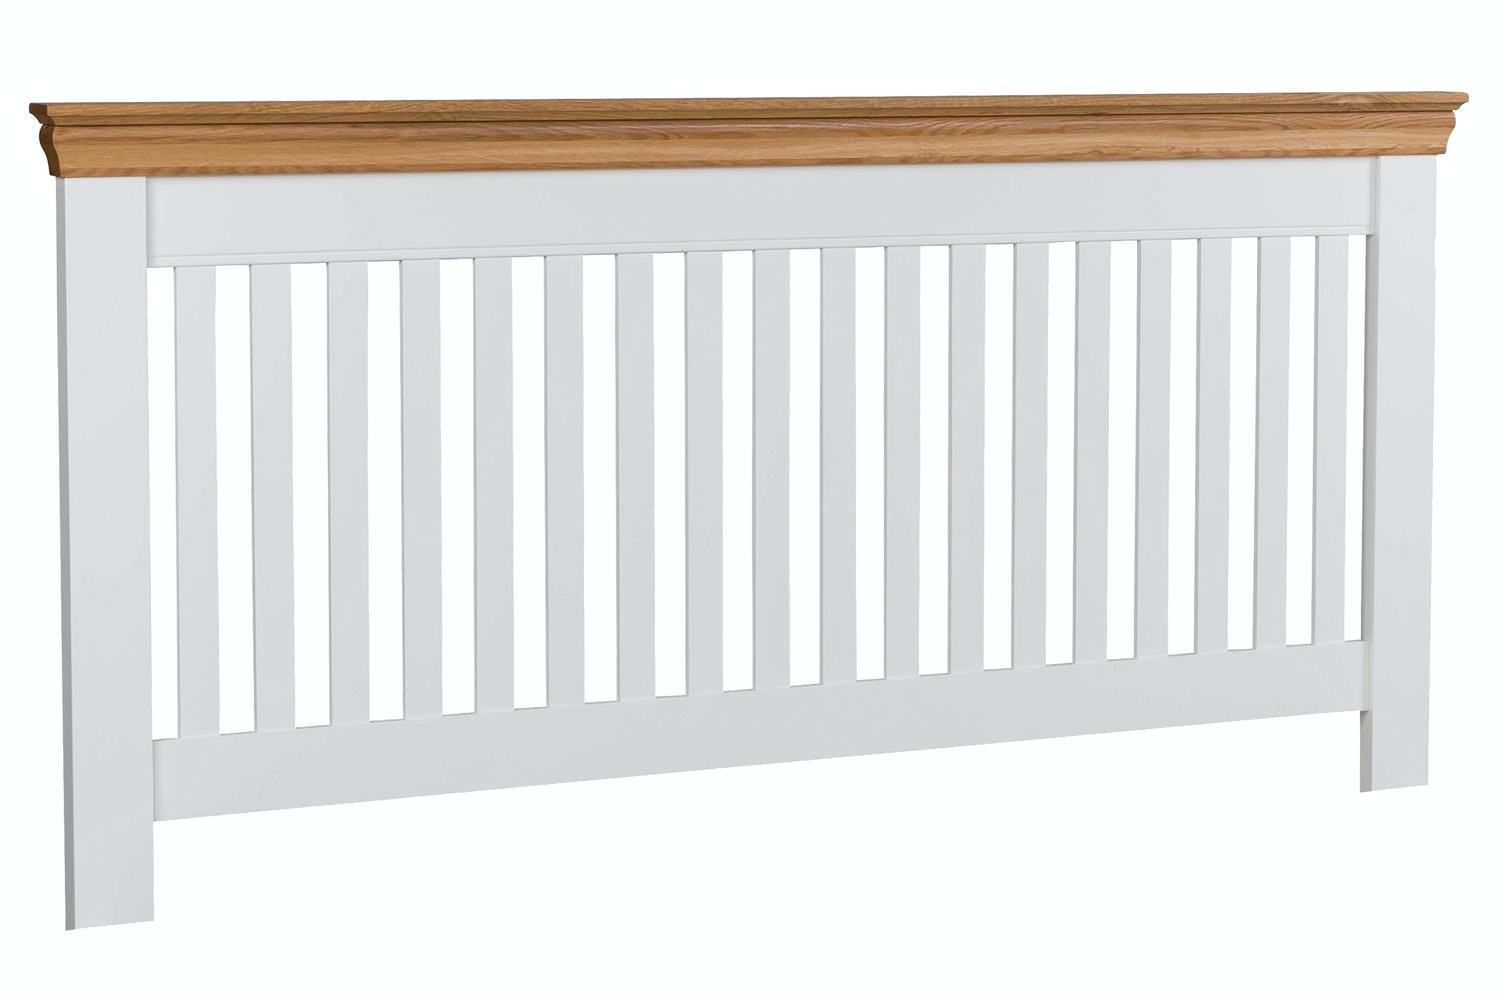 Ascott Headboard | 6ft | White & Oak